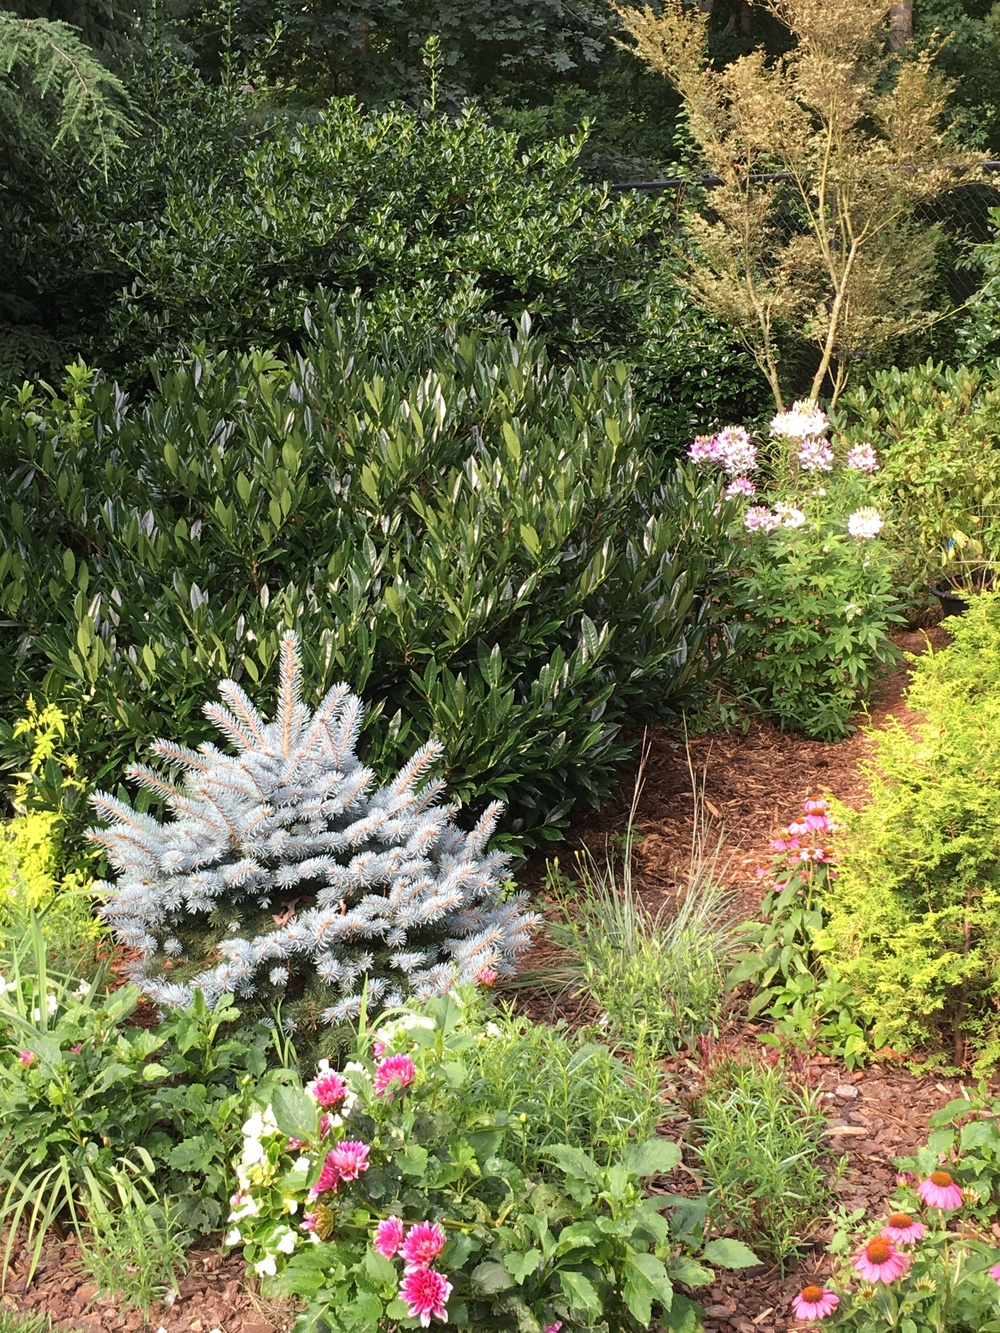 Evergreen trees and shrubs mix with perennials perfectly.